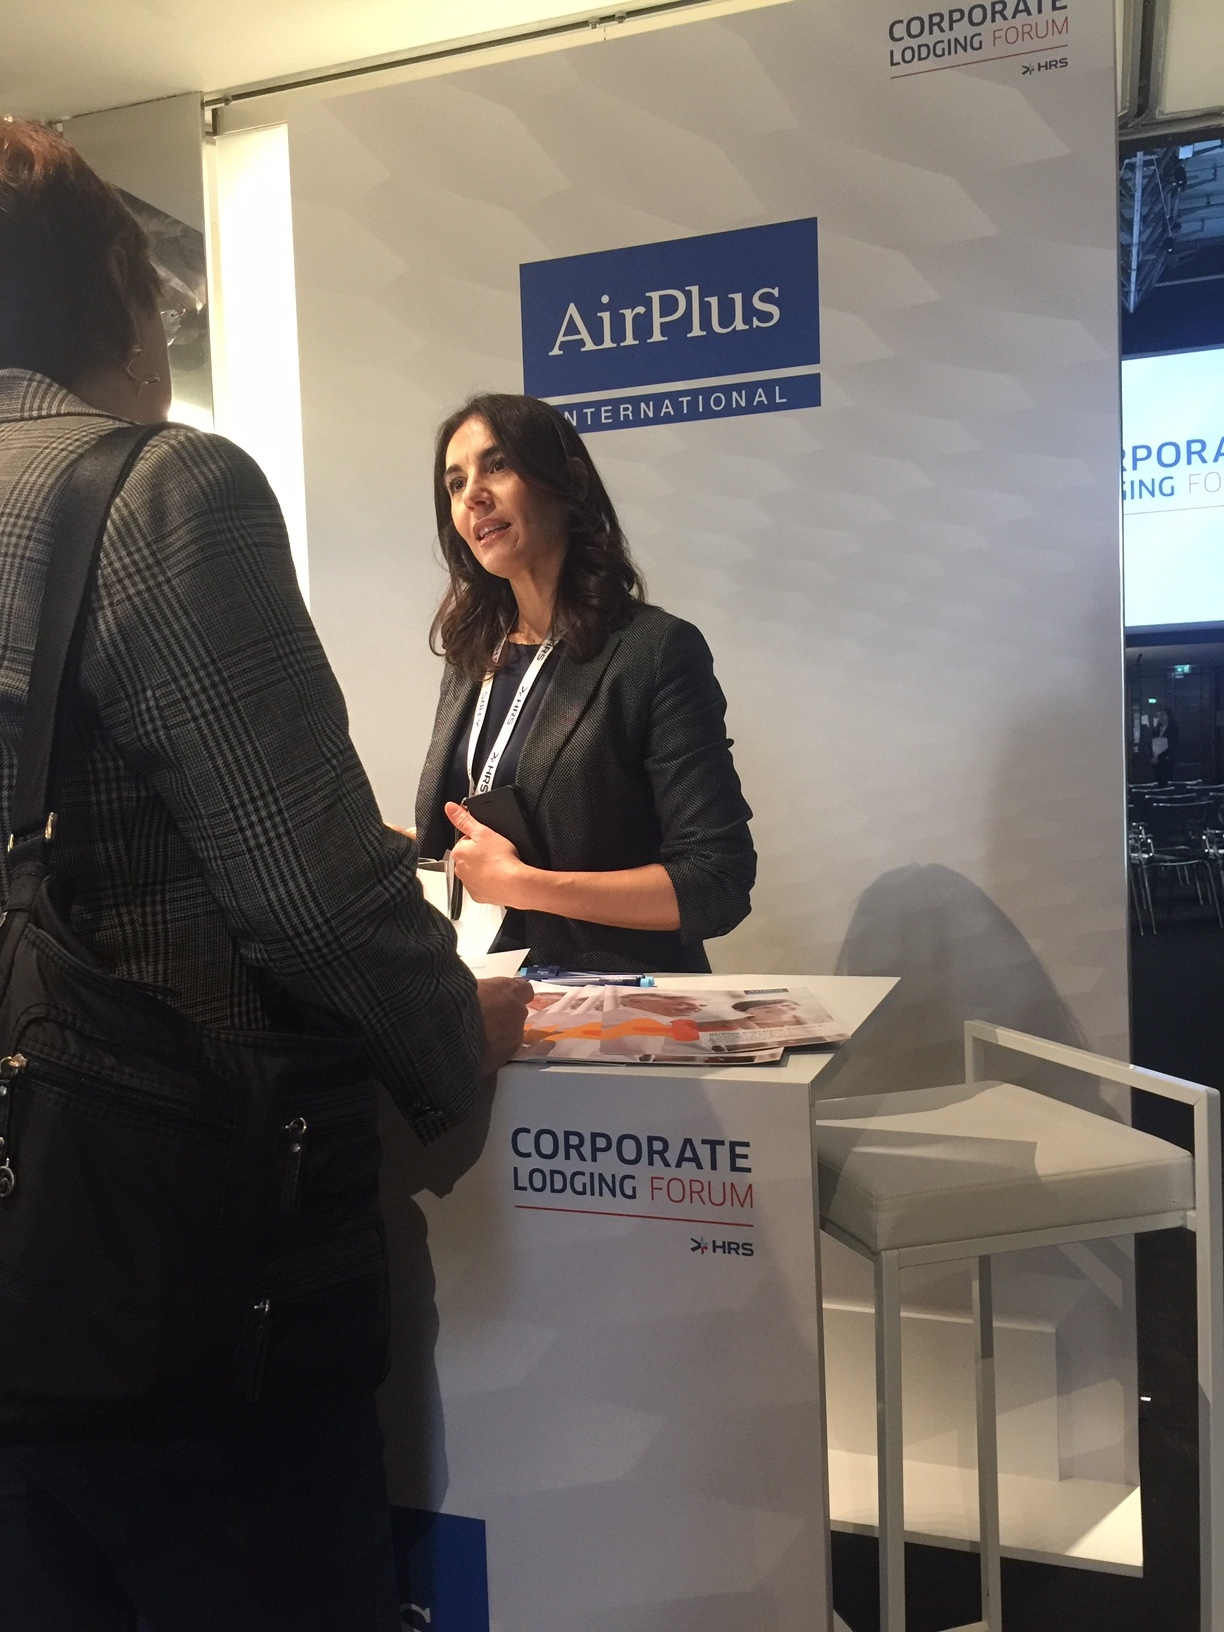 Stand Airplus - HRS Corporate Lodging Forum 2019 Milano